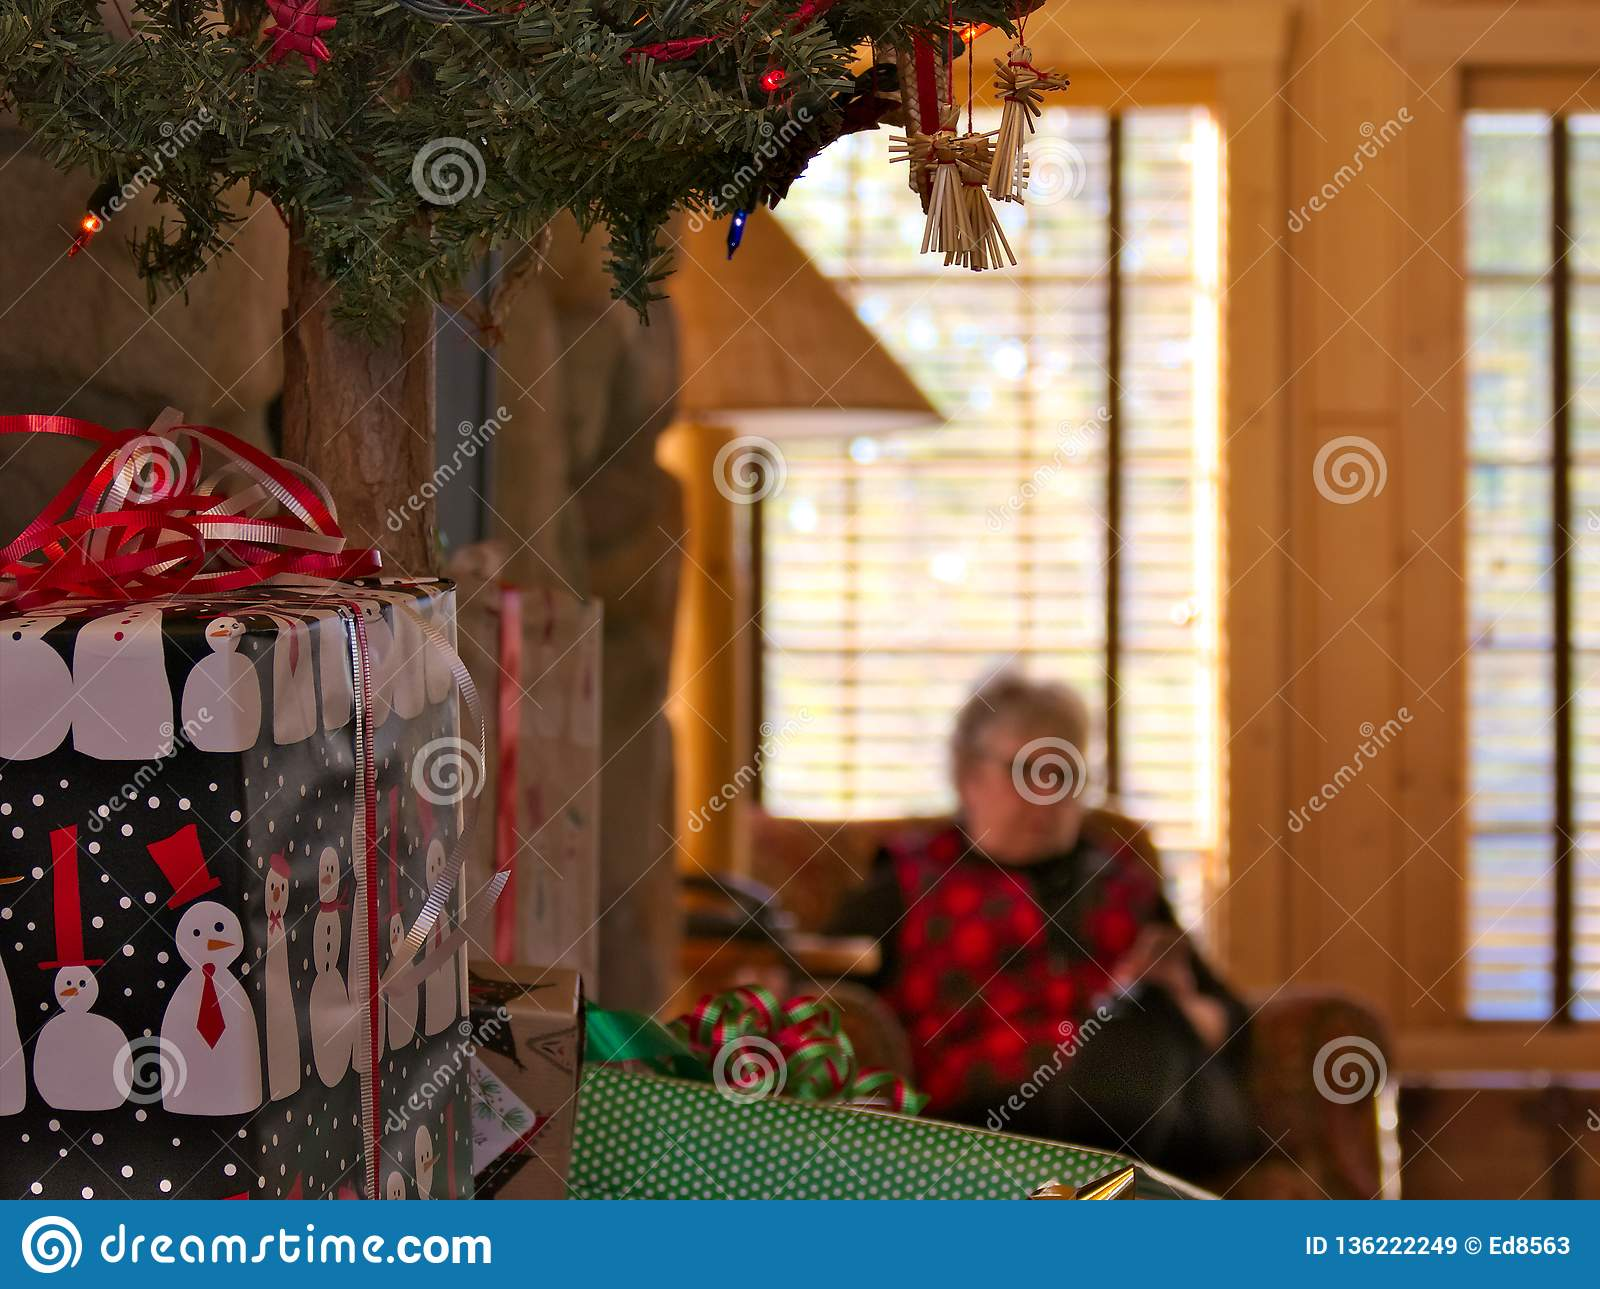 Old grandmother. senior lady enjoys mobile phone, smartphone at Christmas time